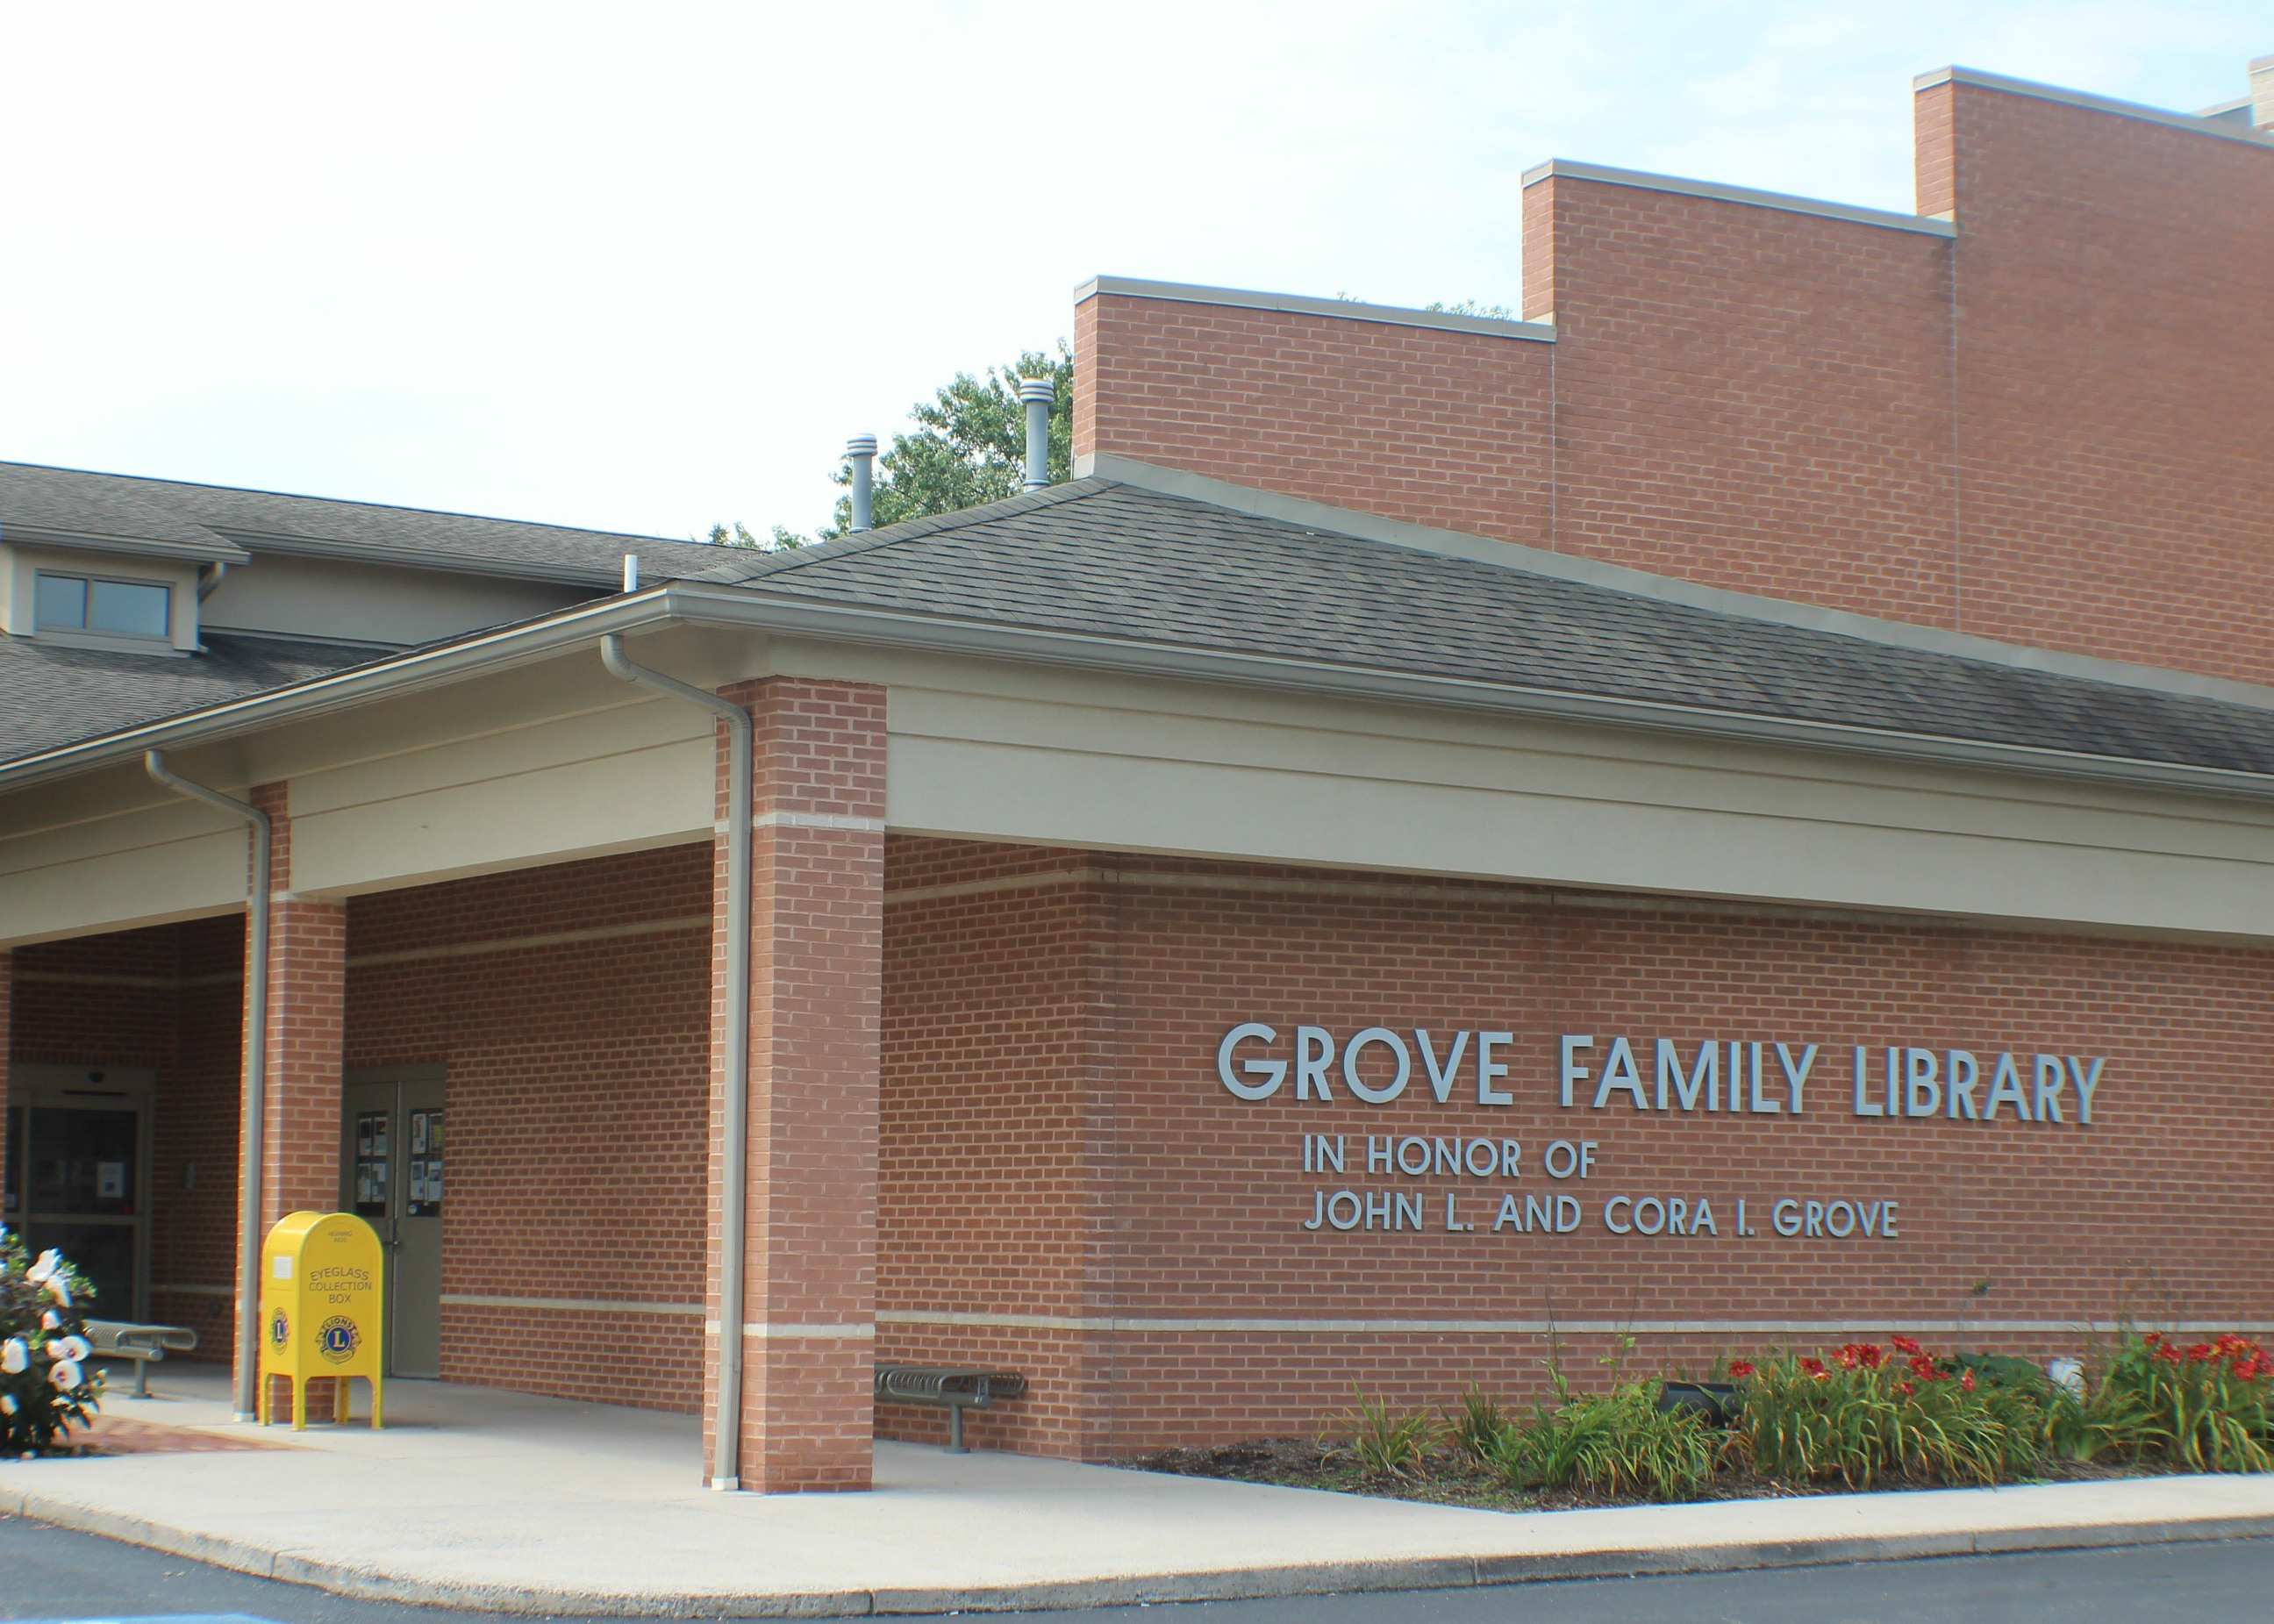 Grove Family Library